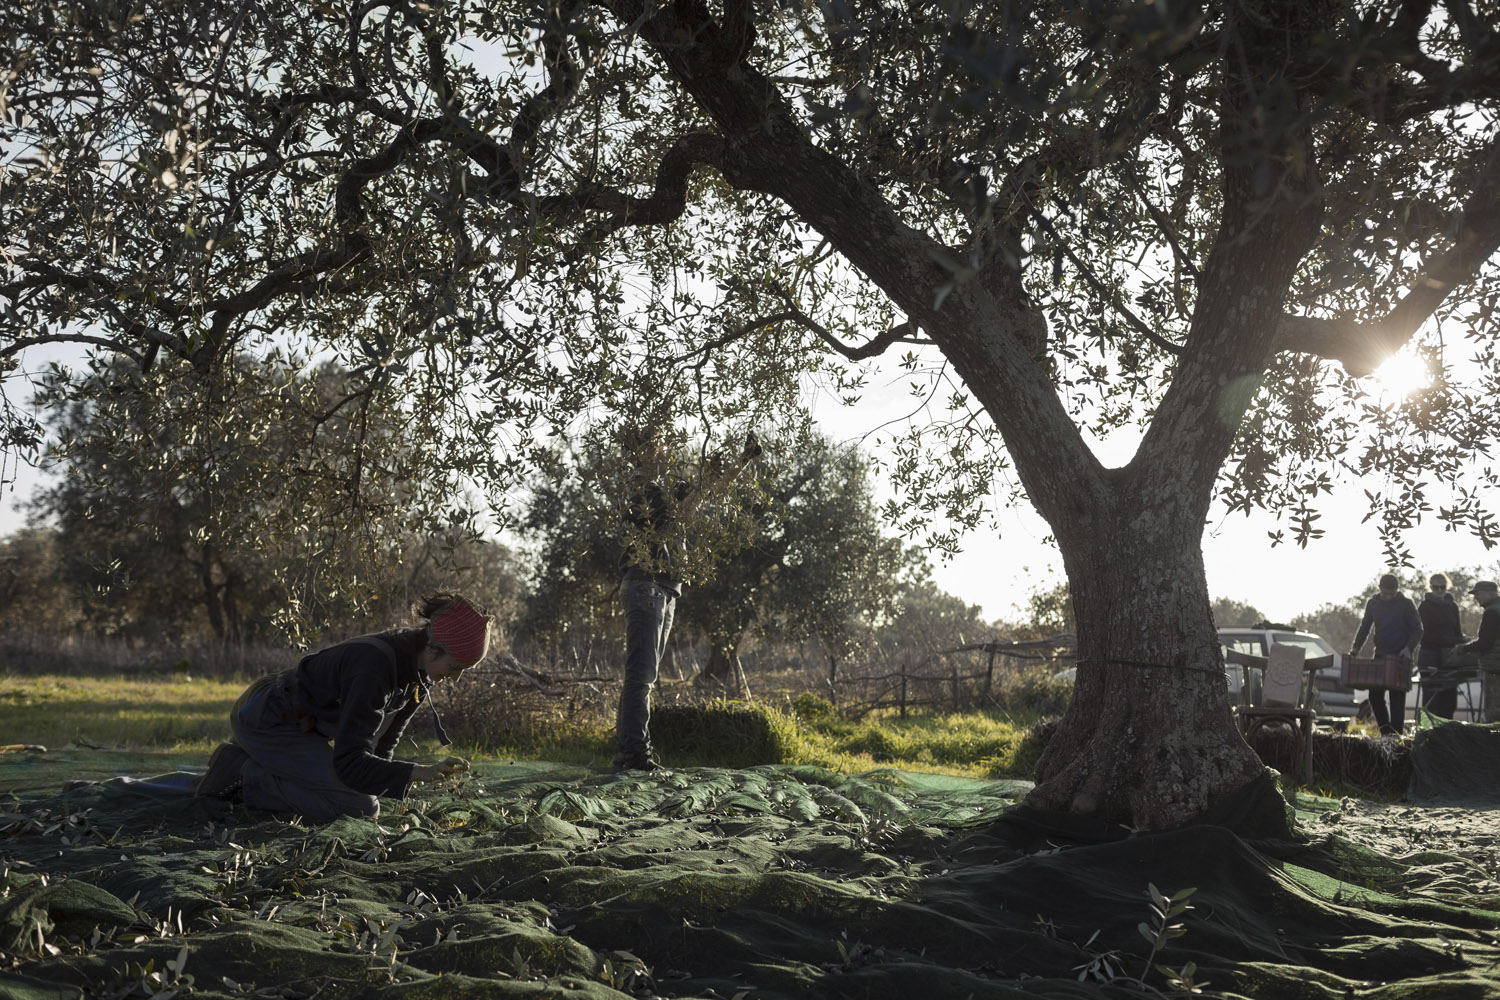 Picking a friend's olives in the countryside of Martina Franca.  (2014)